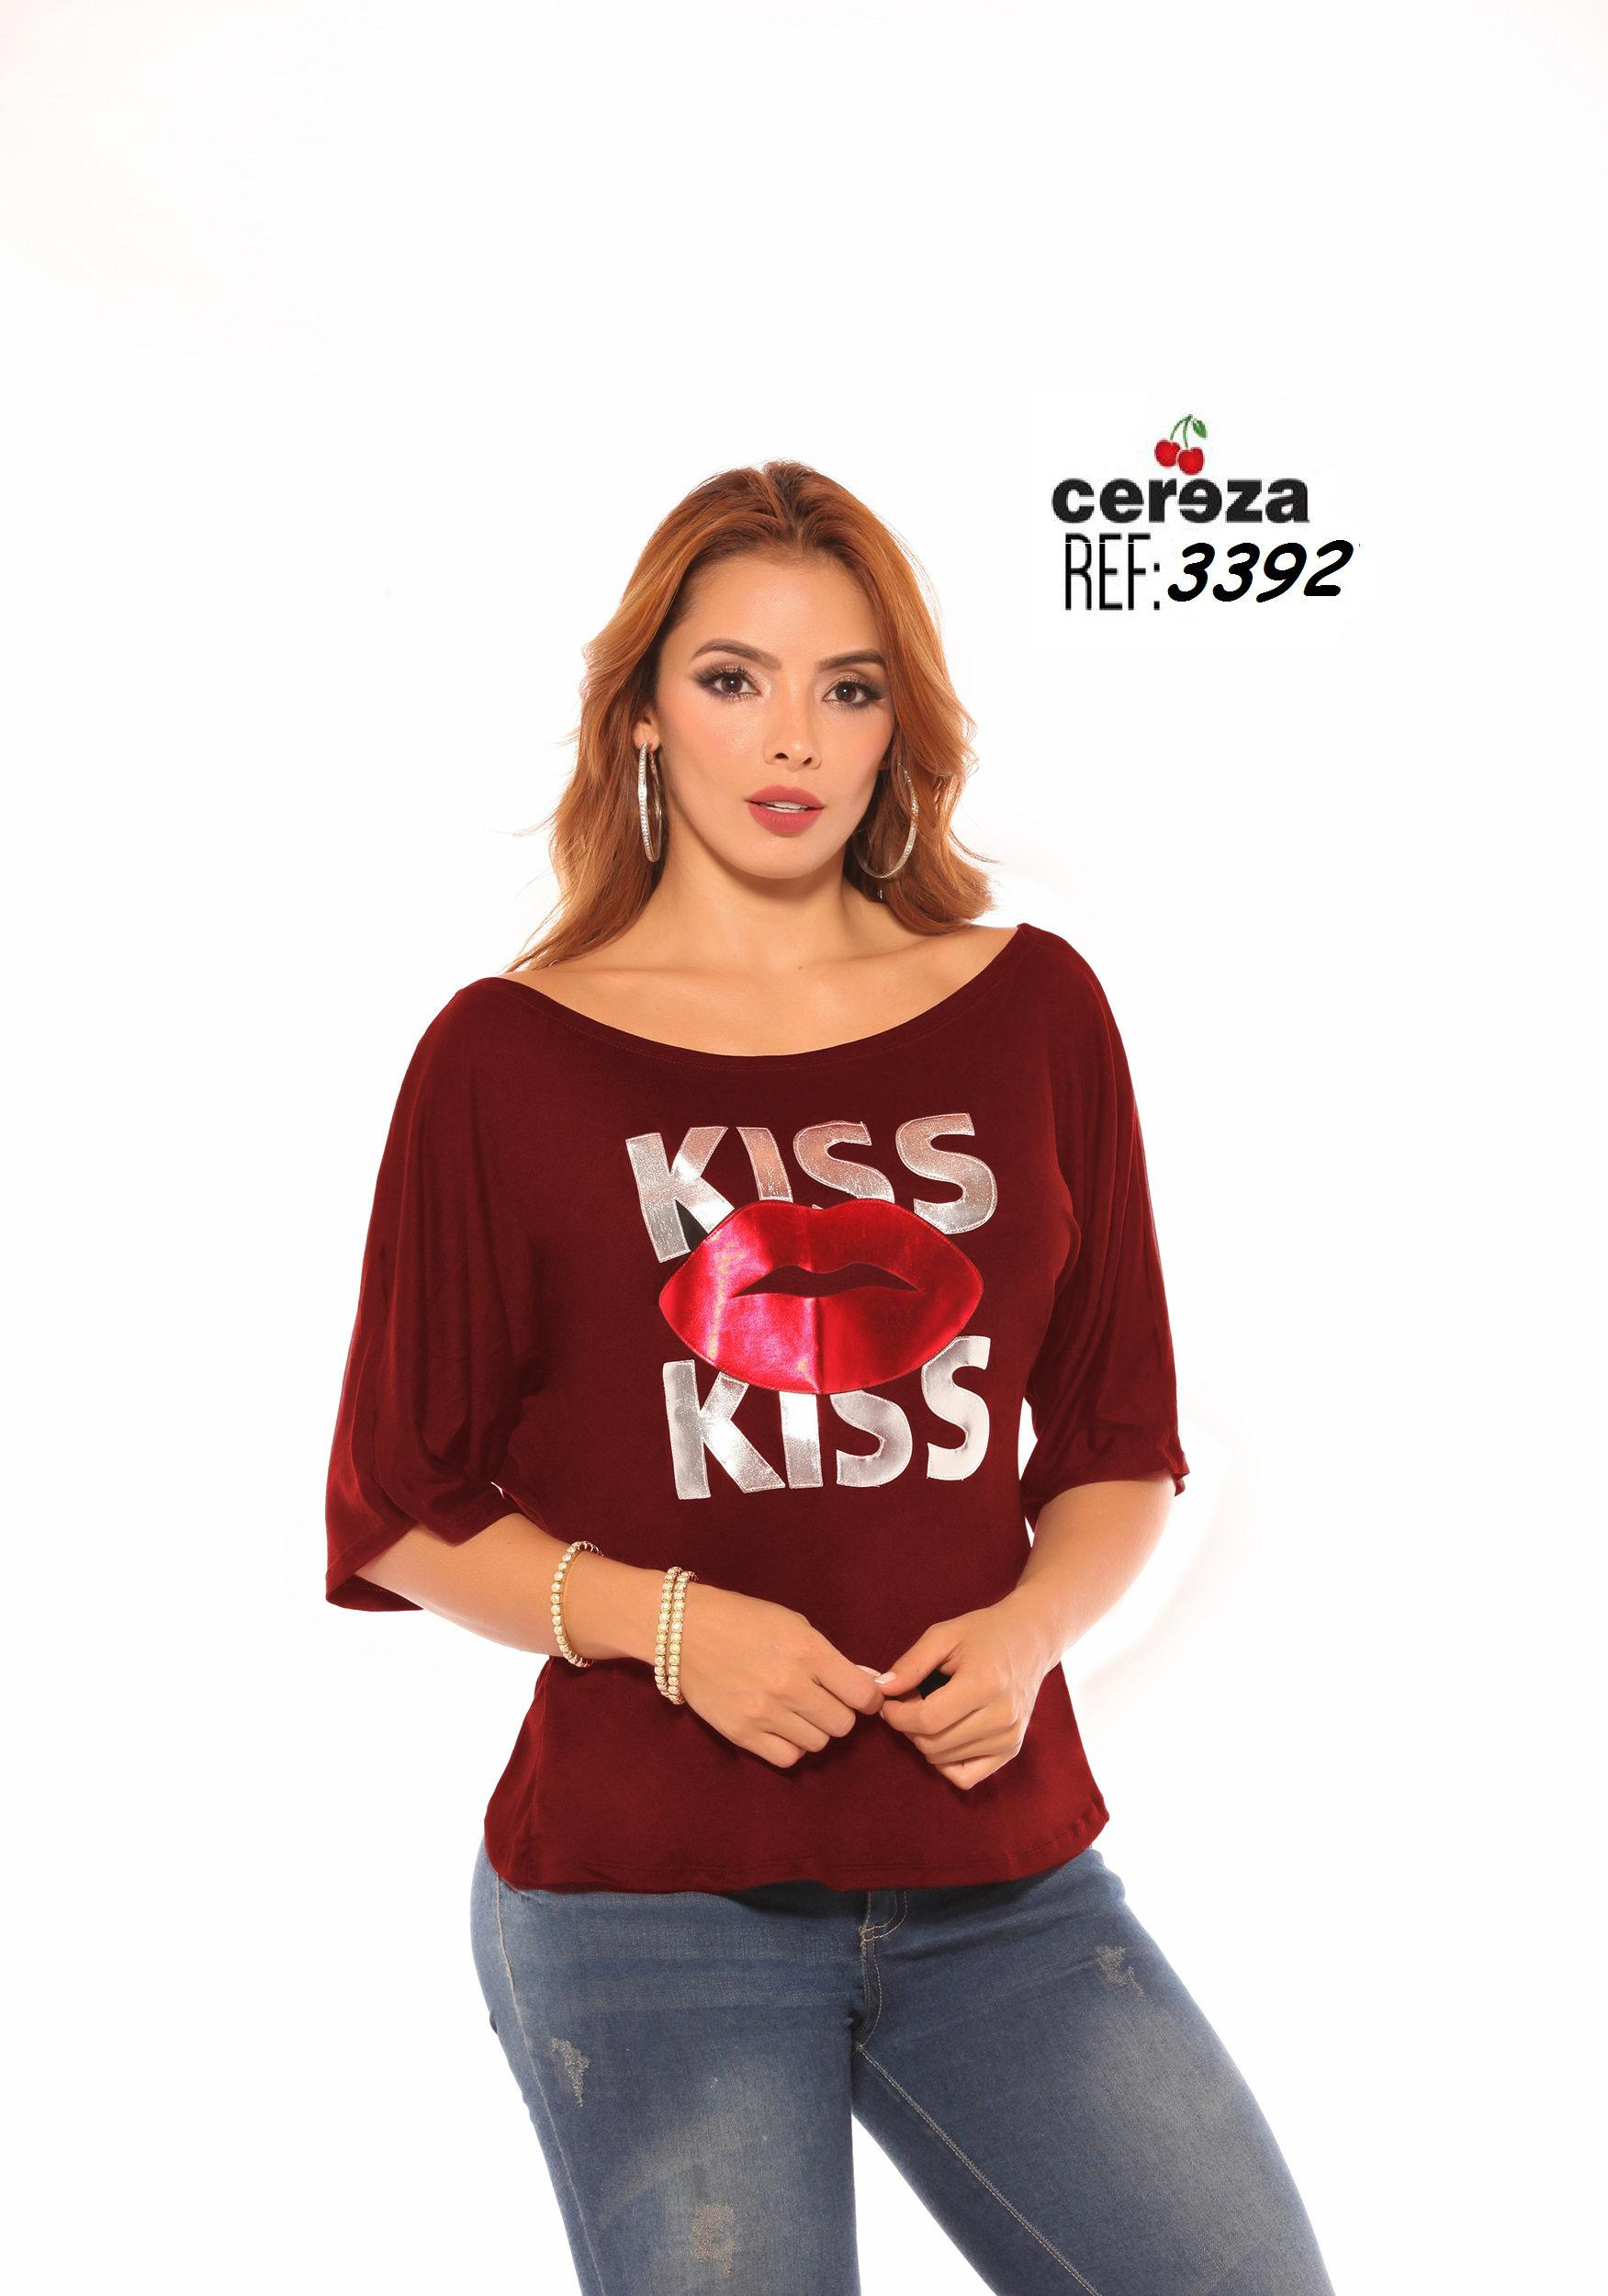 Sensacional Blusa Colombiana Sexy Cereza Media Manga, Incluye Top